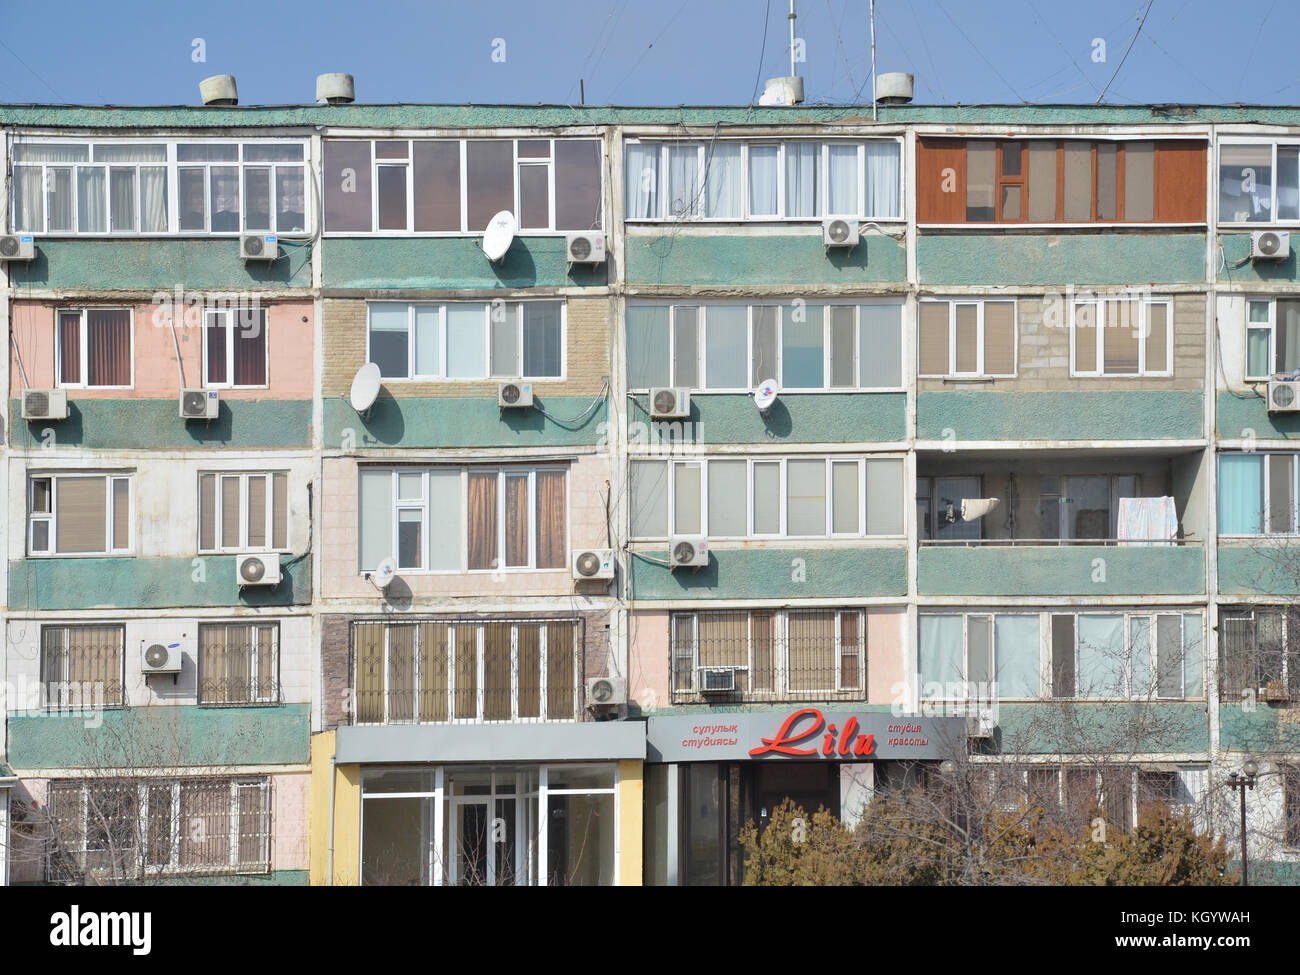 colorful apartment building from soviet-era in Aktau Kazakhstan next to the Caspian sea. Krushchyovka building. - Stock Image